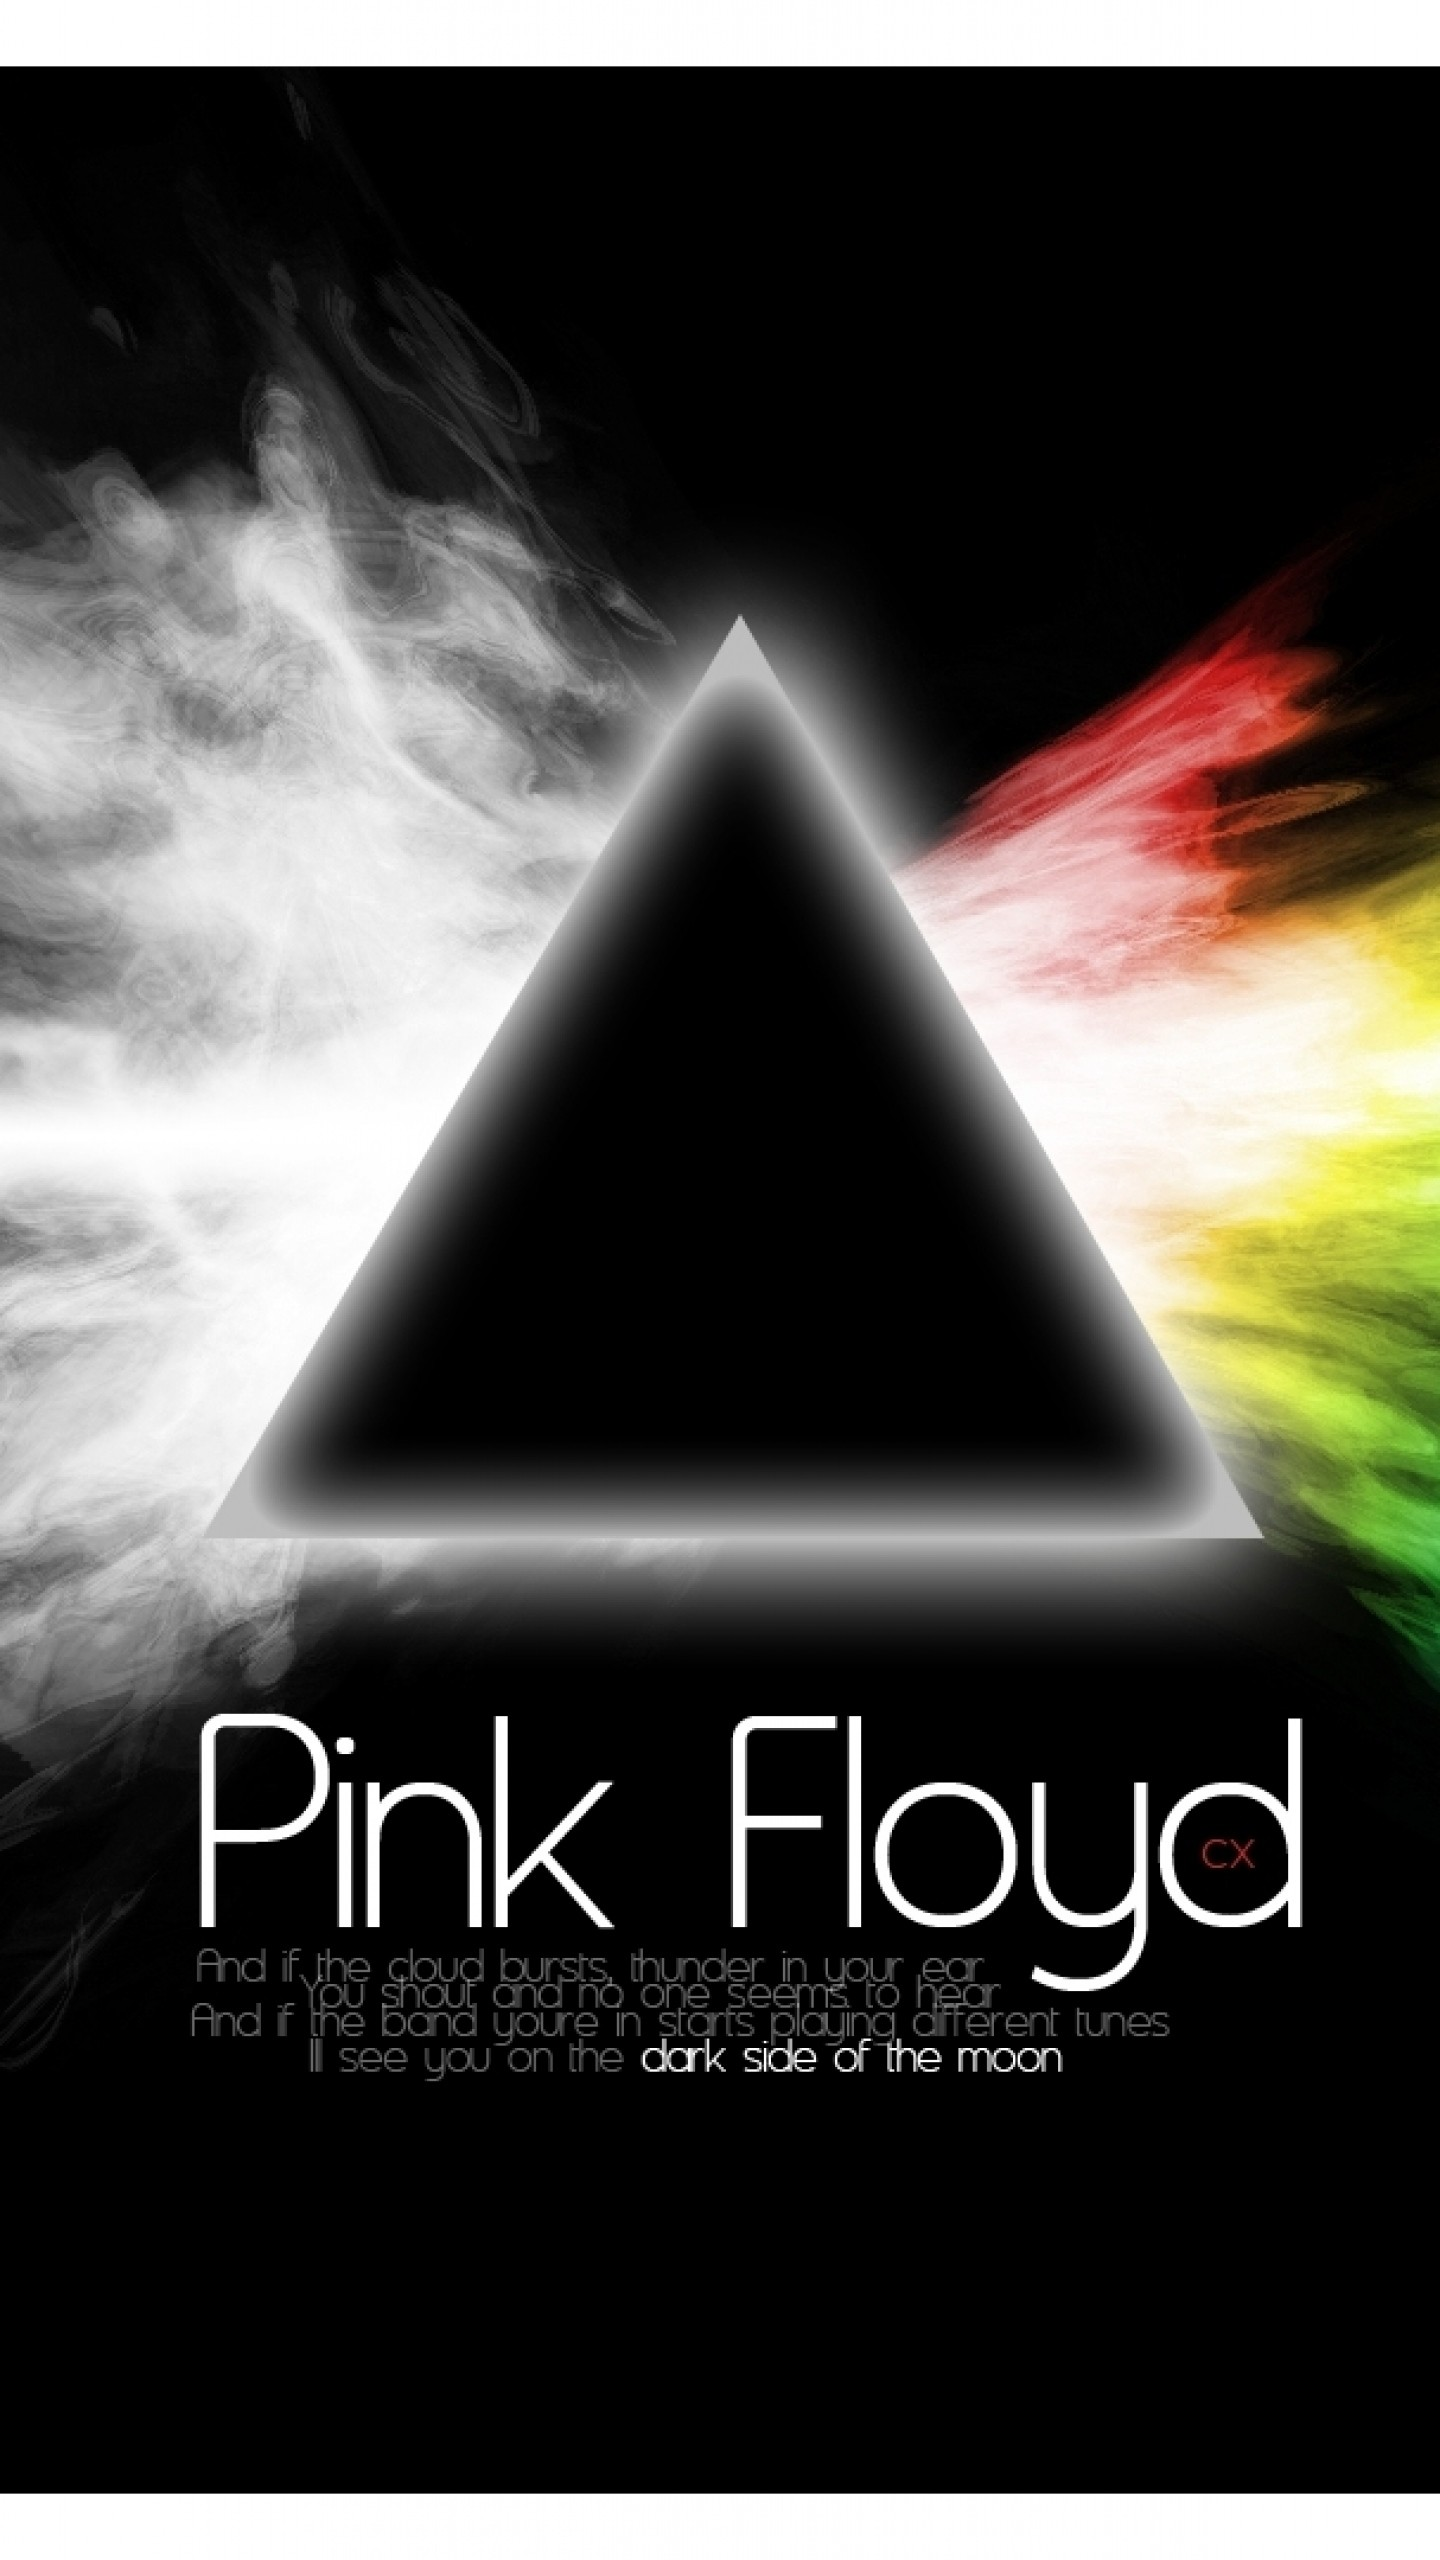 Wallpaper pink floyd, sign, text, graphics, triangle